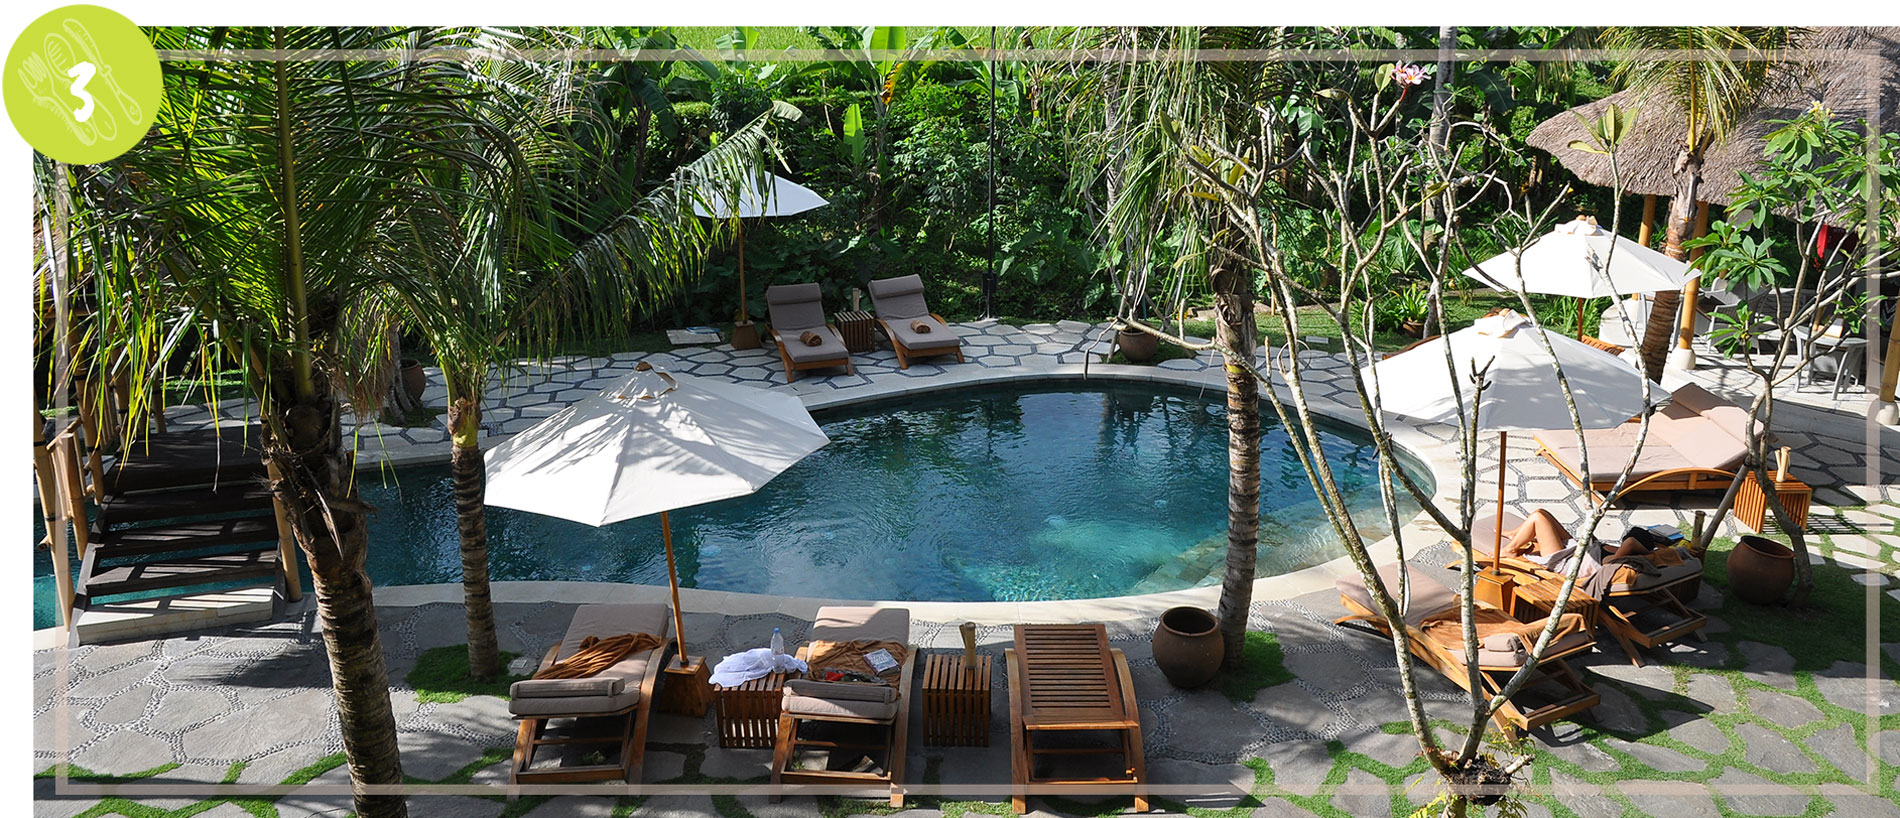 Travel_IT_Restaurants_bnr_Bali_2